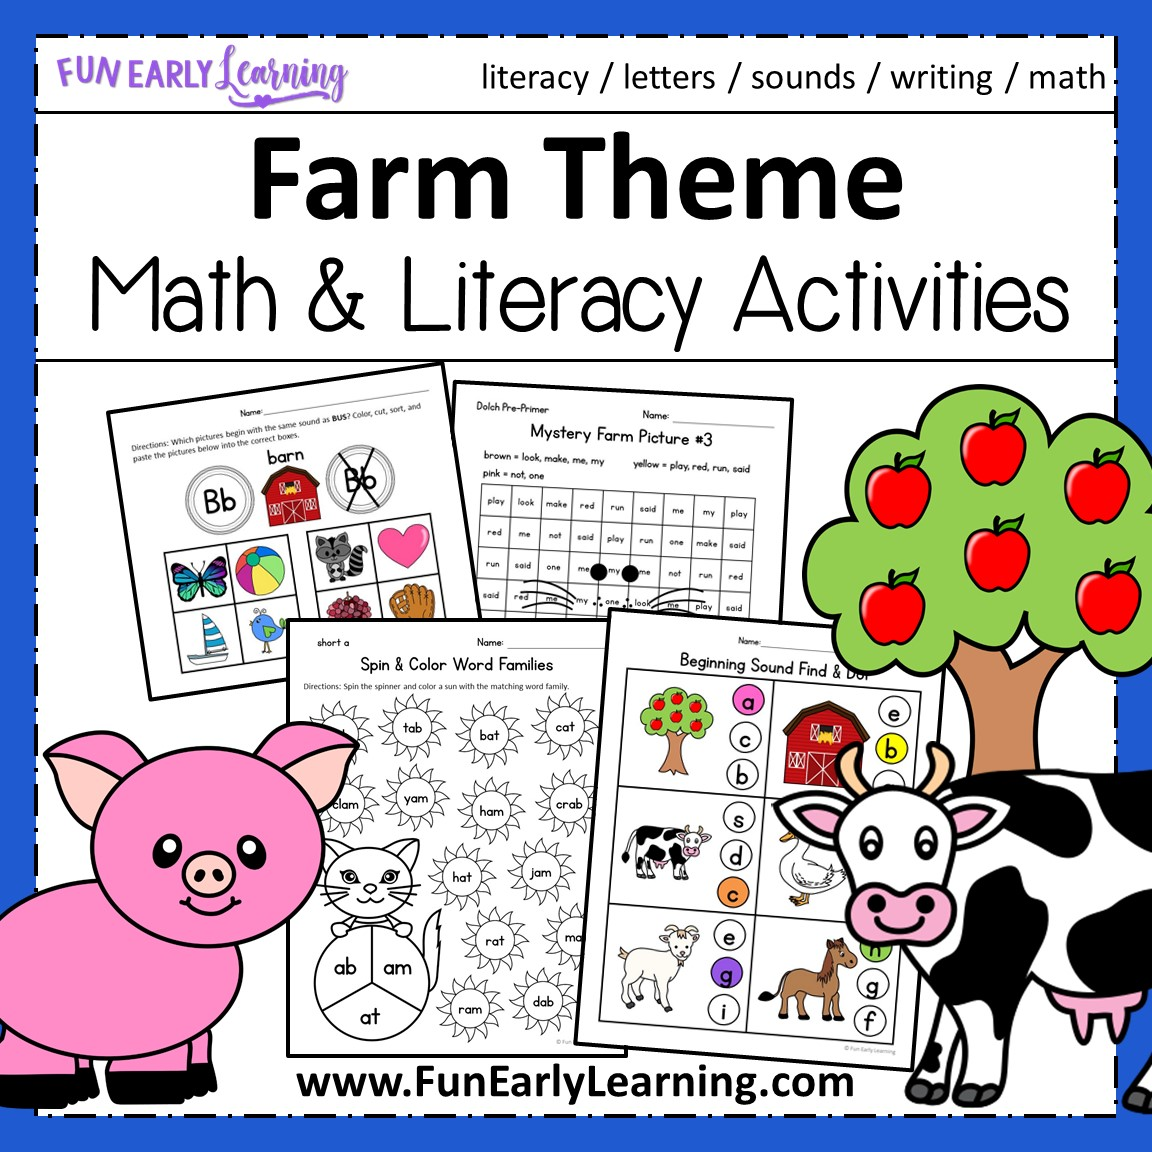 Families Theme Activities And Printables For Preschool And